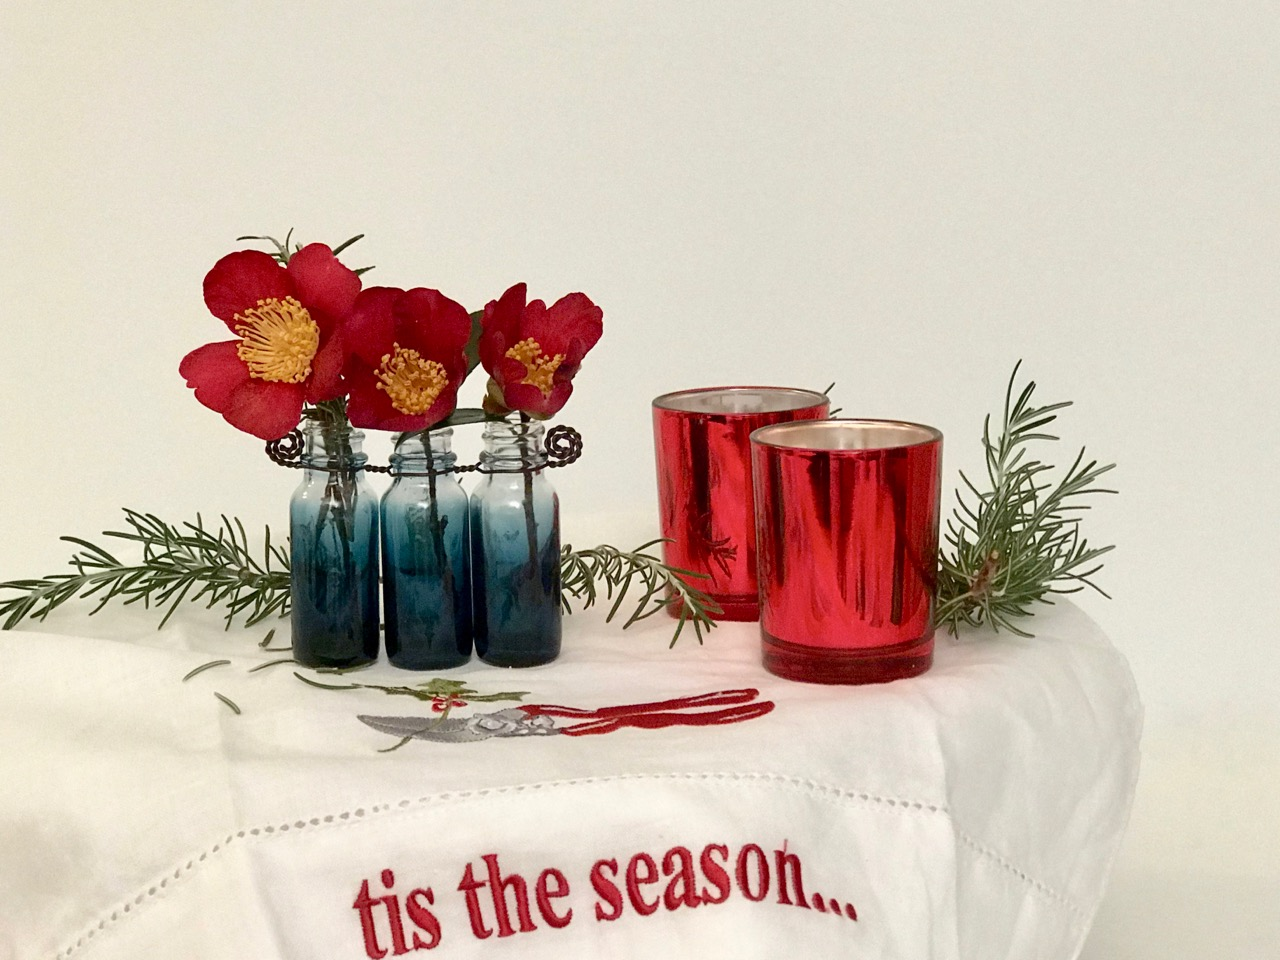 In a vase on monday yuletide greetings pbmgarden in a vase on monday yuletide greetings m4hsunfo